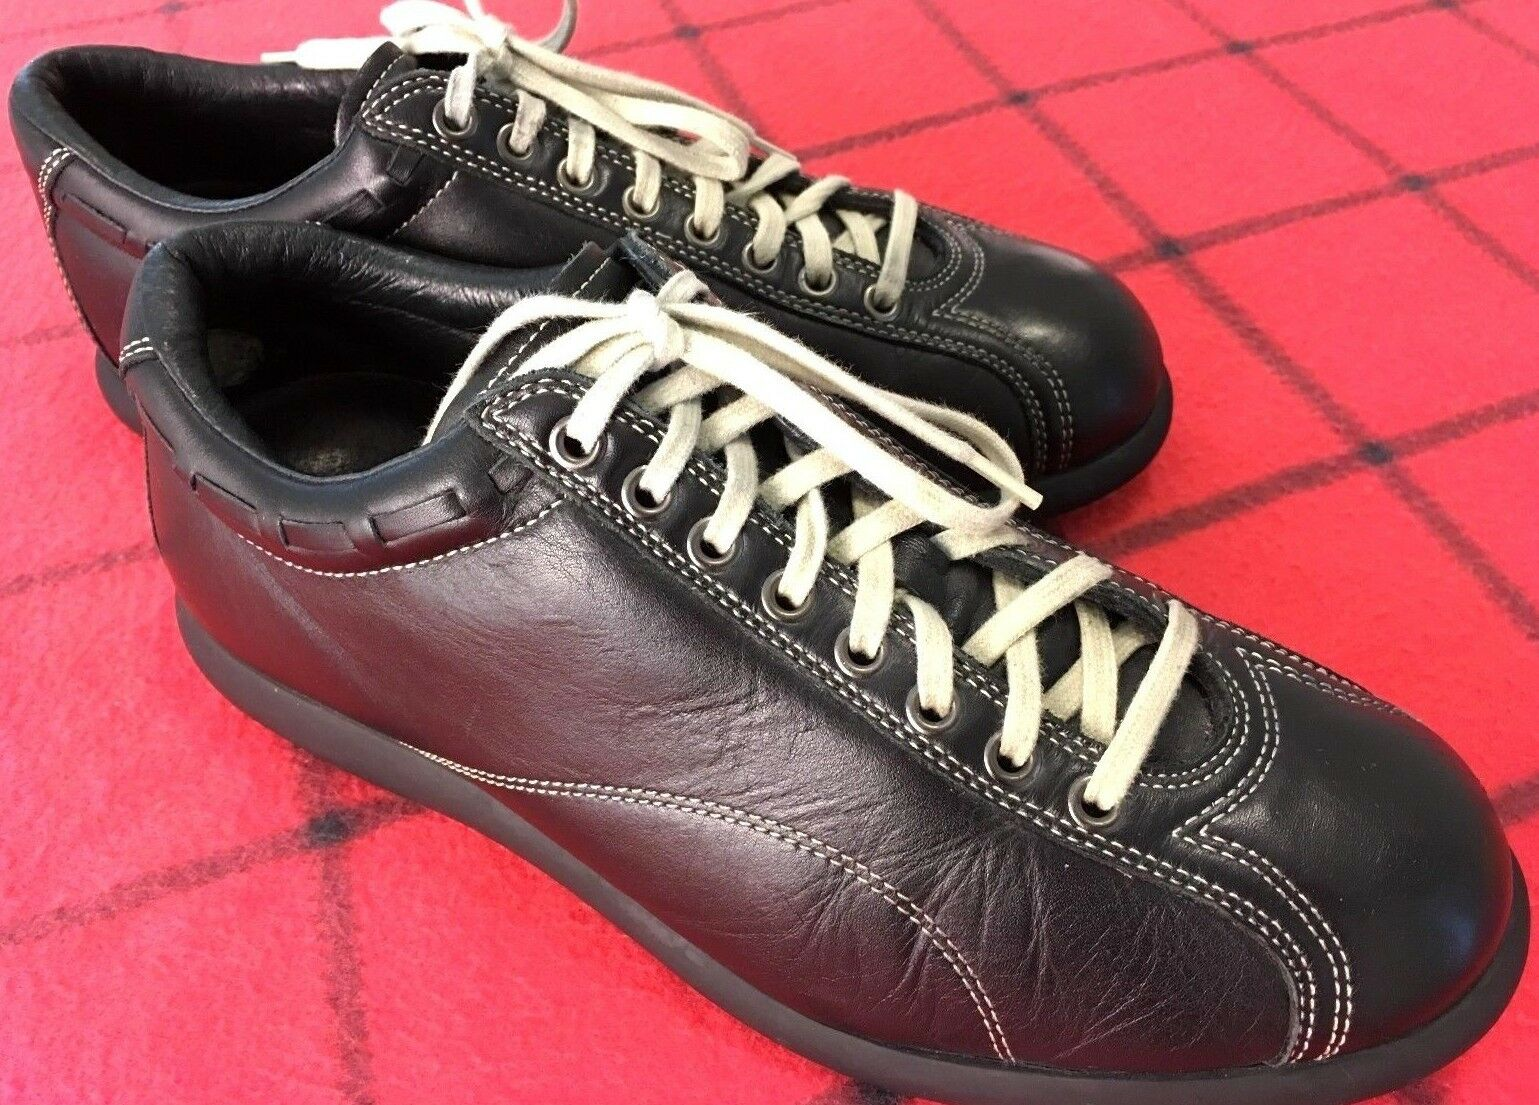 HYDE hommes Sz 10.5 BLK PREMIUM QUALITY COMFORT UPPER/LINING LEATHER ATHLETIC Chaussures